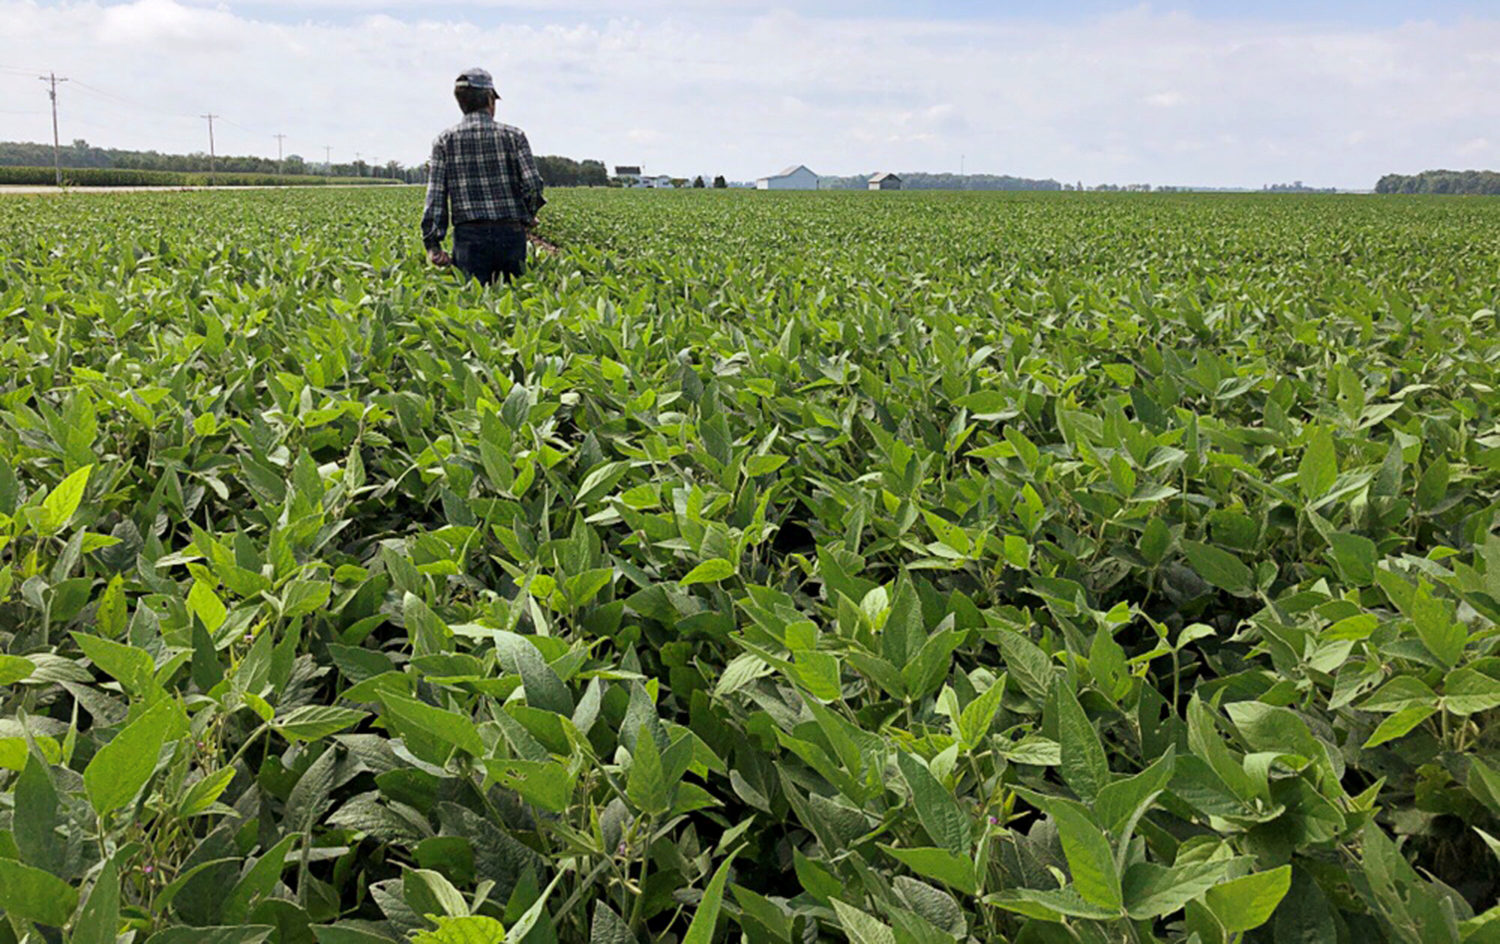 FILE PHOTO: A crop scout walks through a soybean field to check on crops during the Pro Farmer 2019 Midwest Crop Tour, in Allen County, Indiana, U.S., August 19, 2019. REUTERS/P.J. Huffstutter